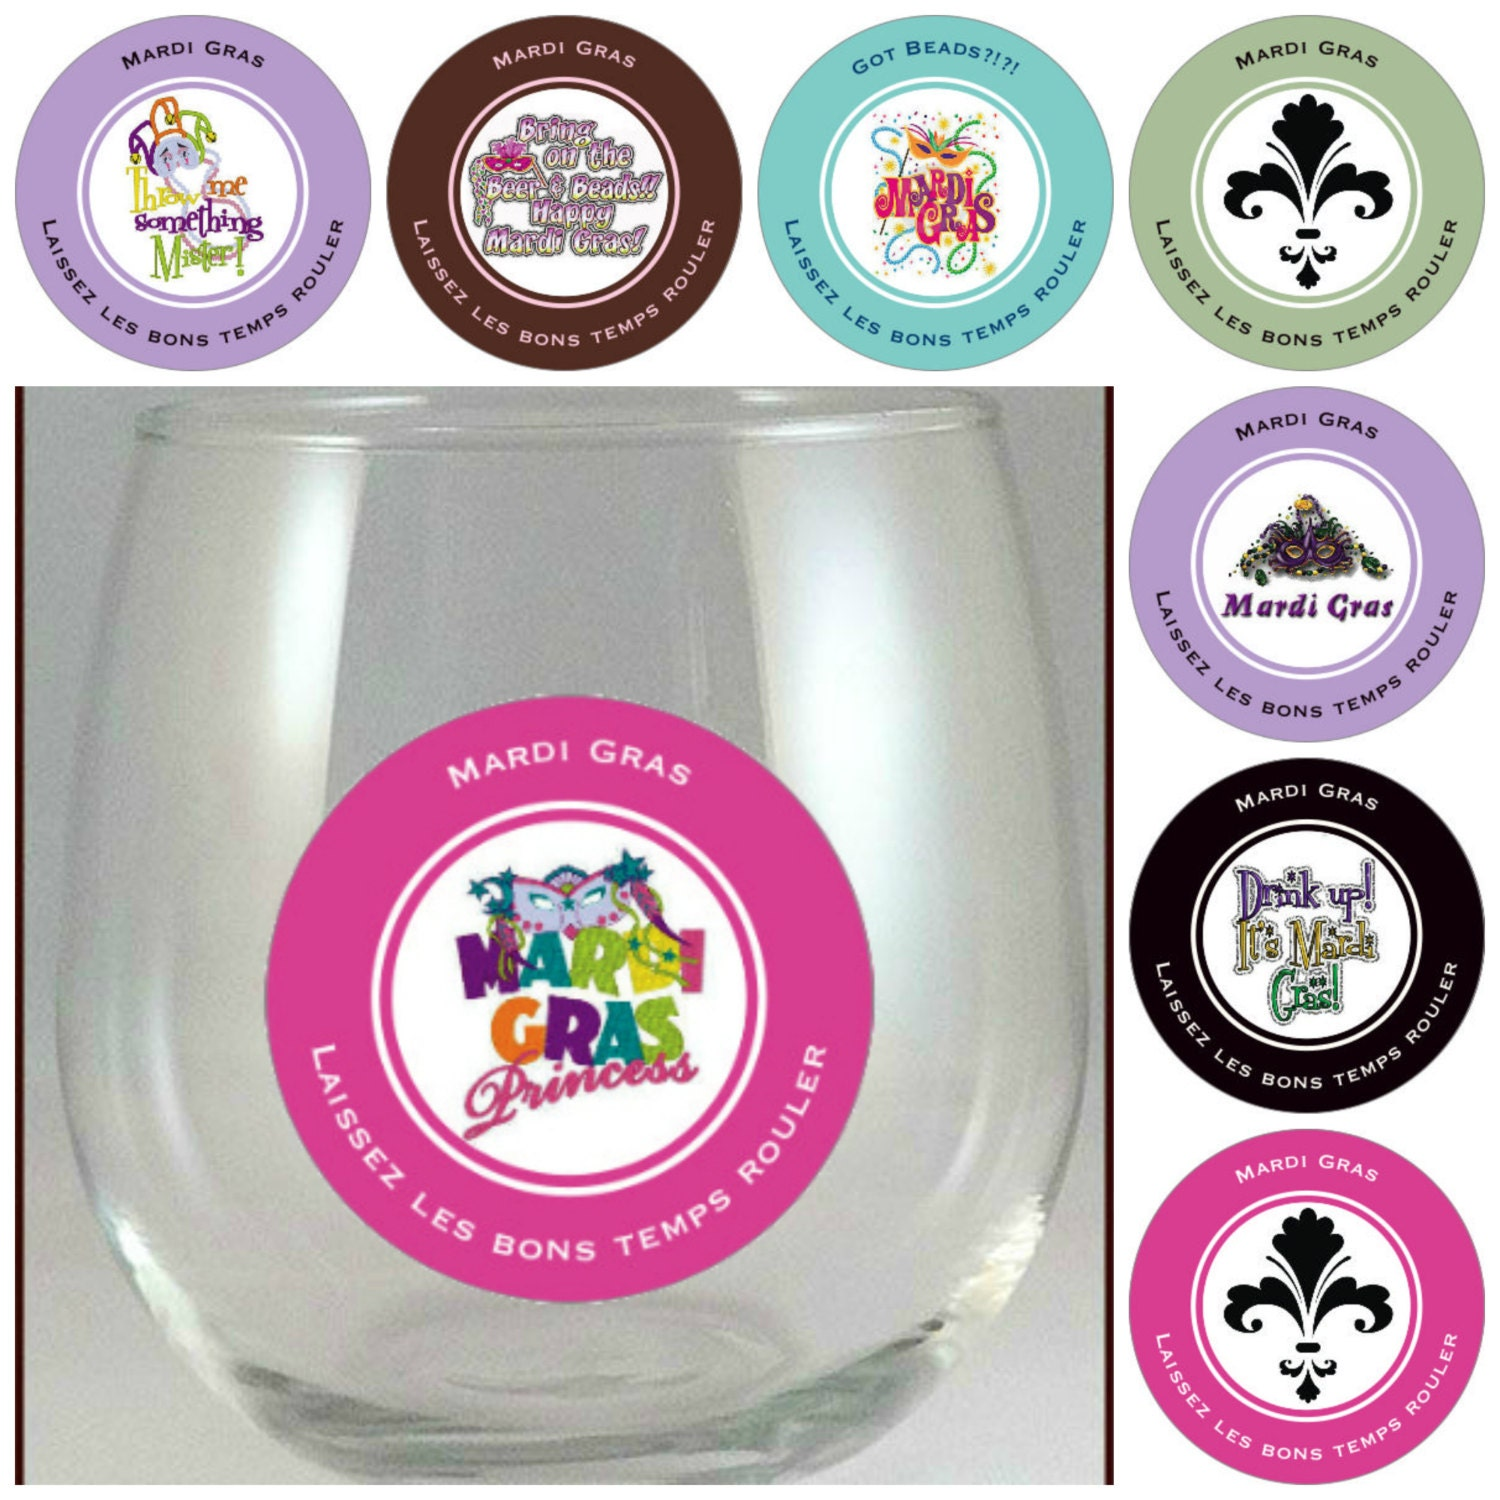 Mardi Gras Glass Decals - Mardi Gras Party Favors - Glass Not ...